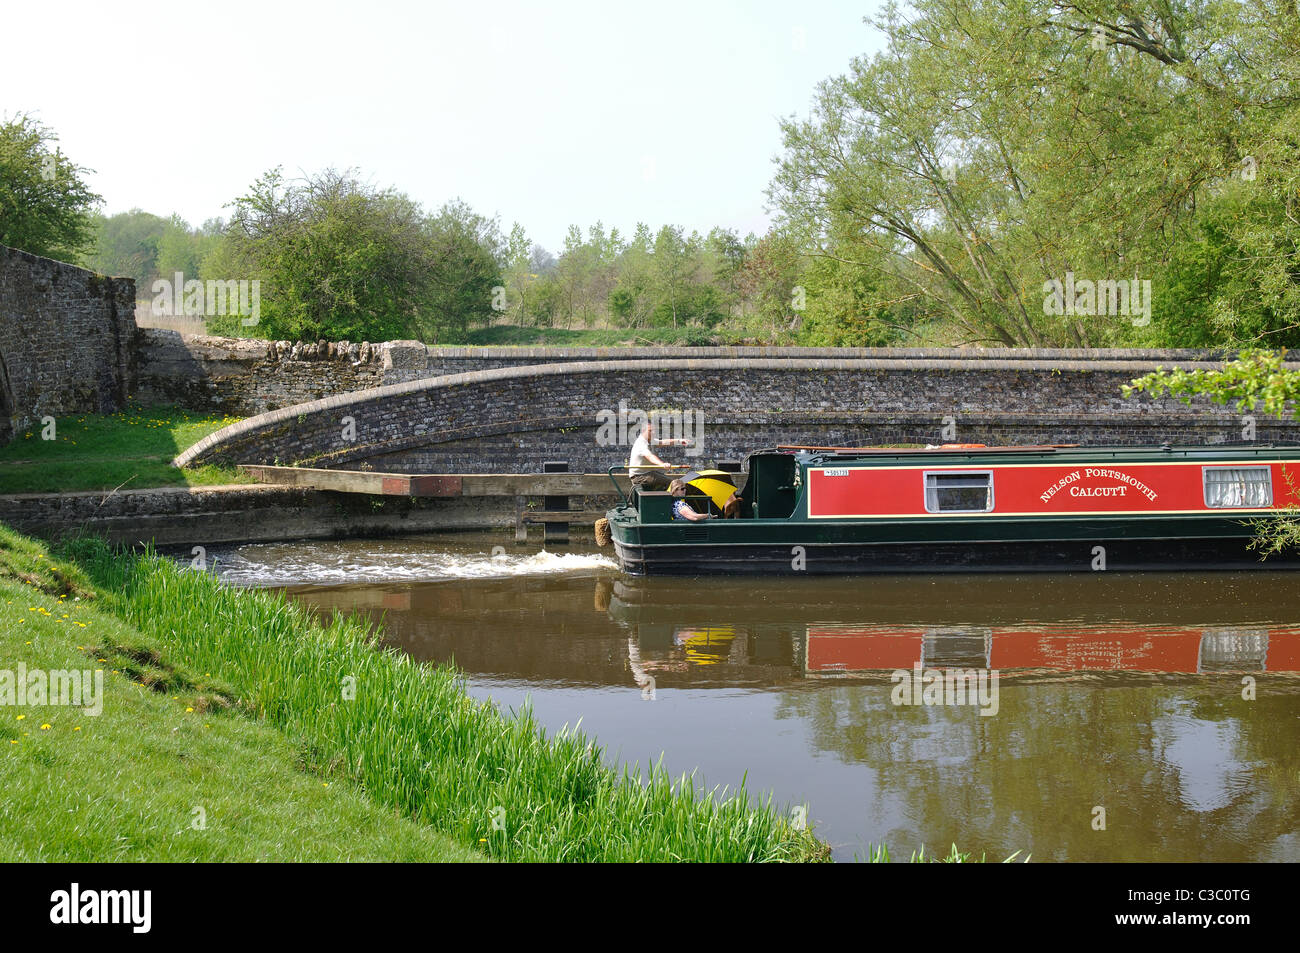 Narrowboat on the Oxford Canal at Aynho Weir, Northamptonshire, England, UK - Stock Image